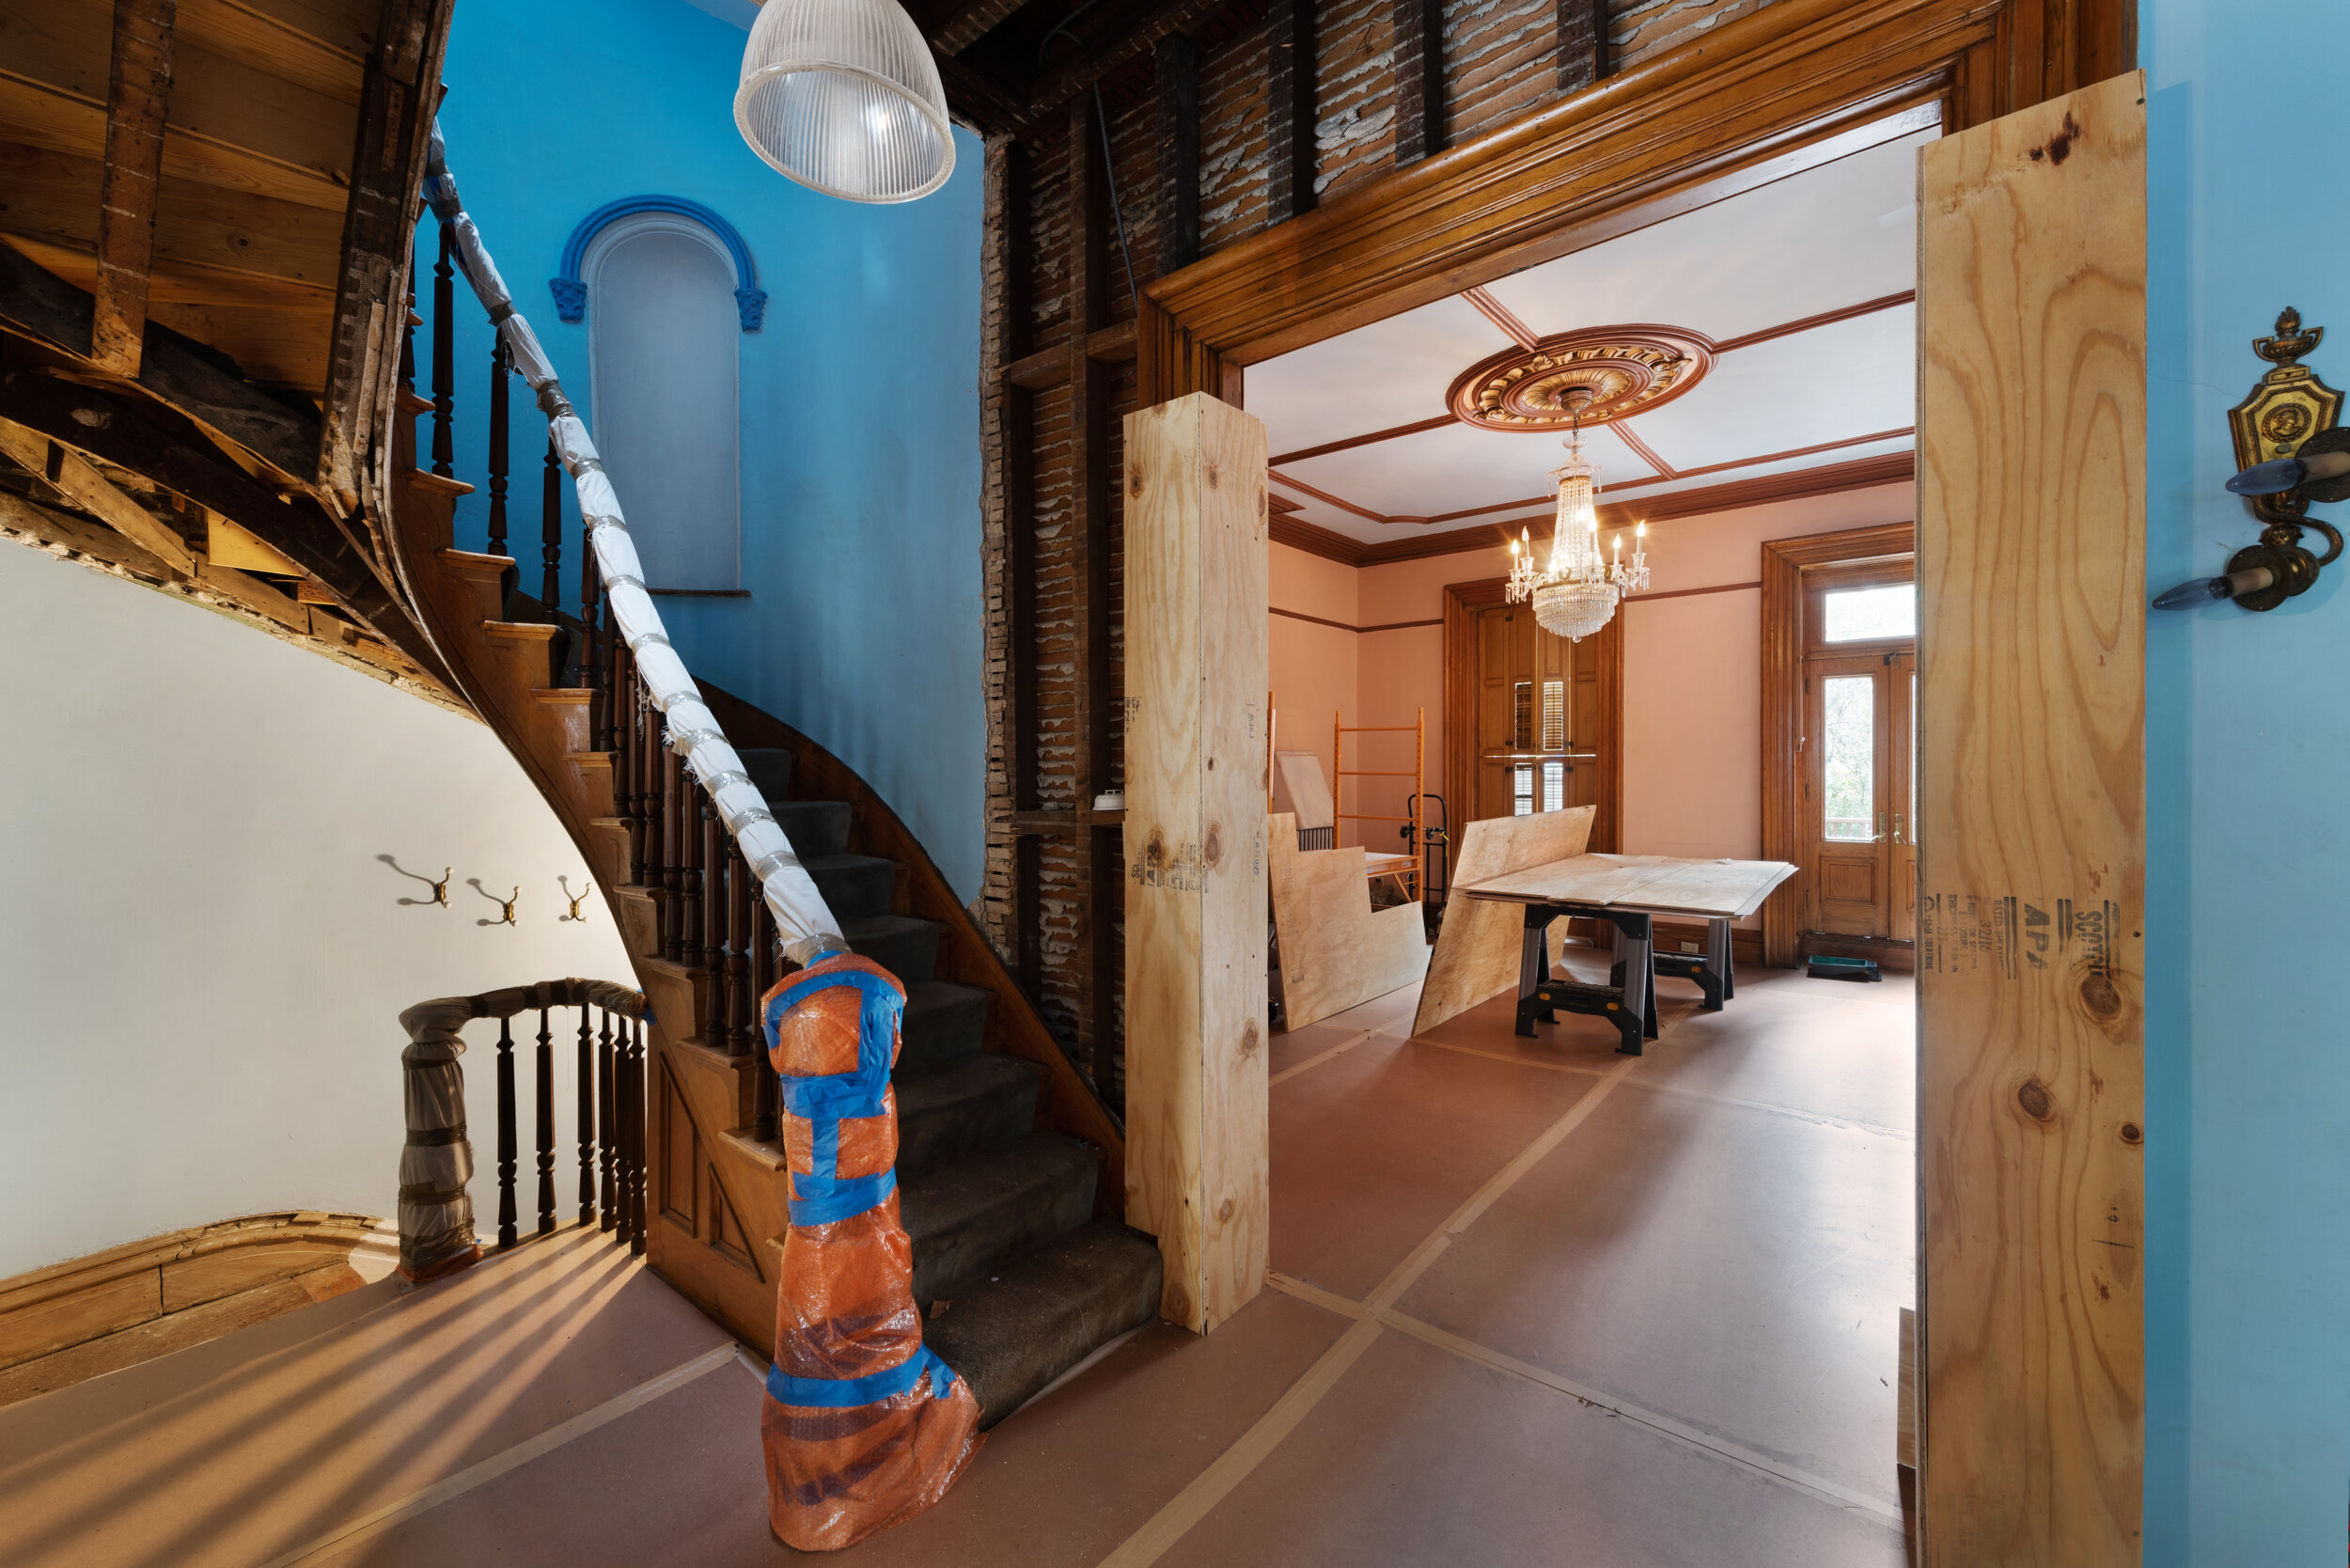 The home features a delicately curved mahogany bannister and stairs.